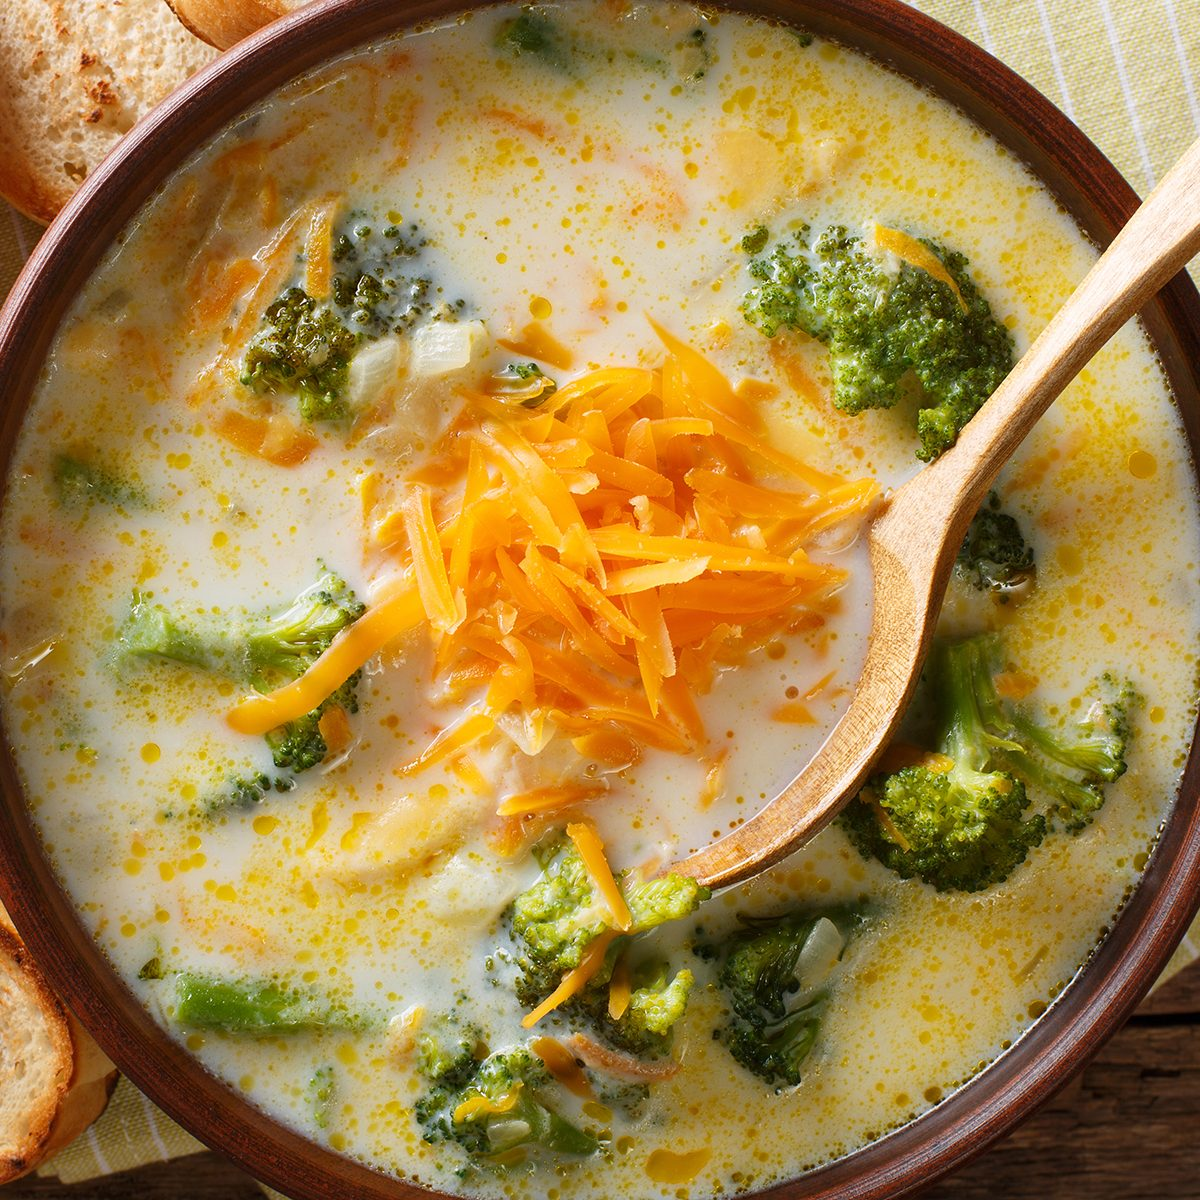 broccoli cheese soup served with toasted bread close-up in a bowl on the table. horizontal top view from above